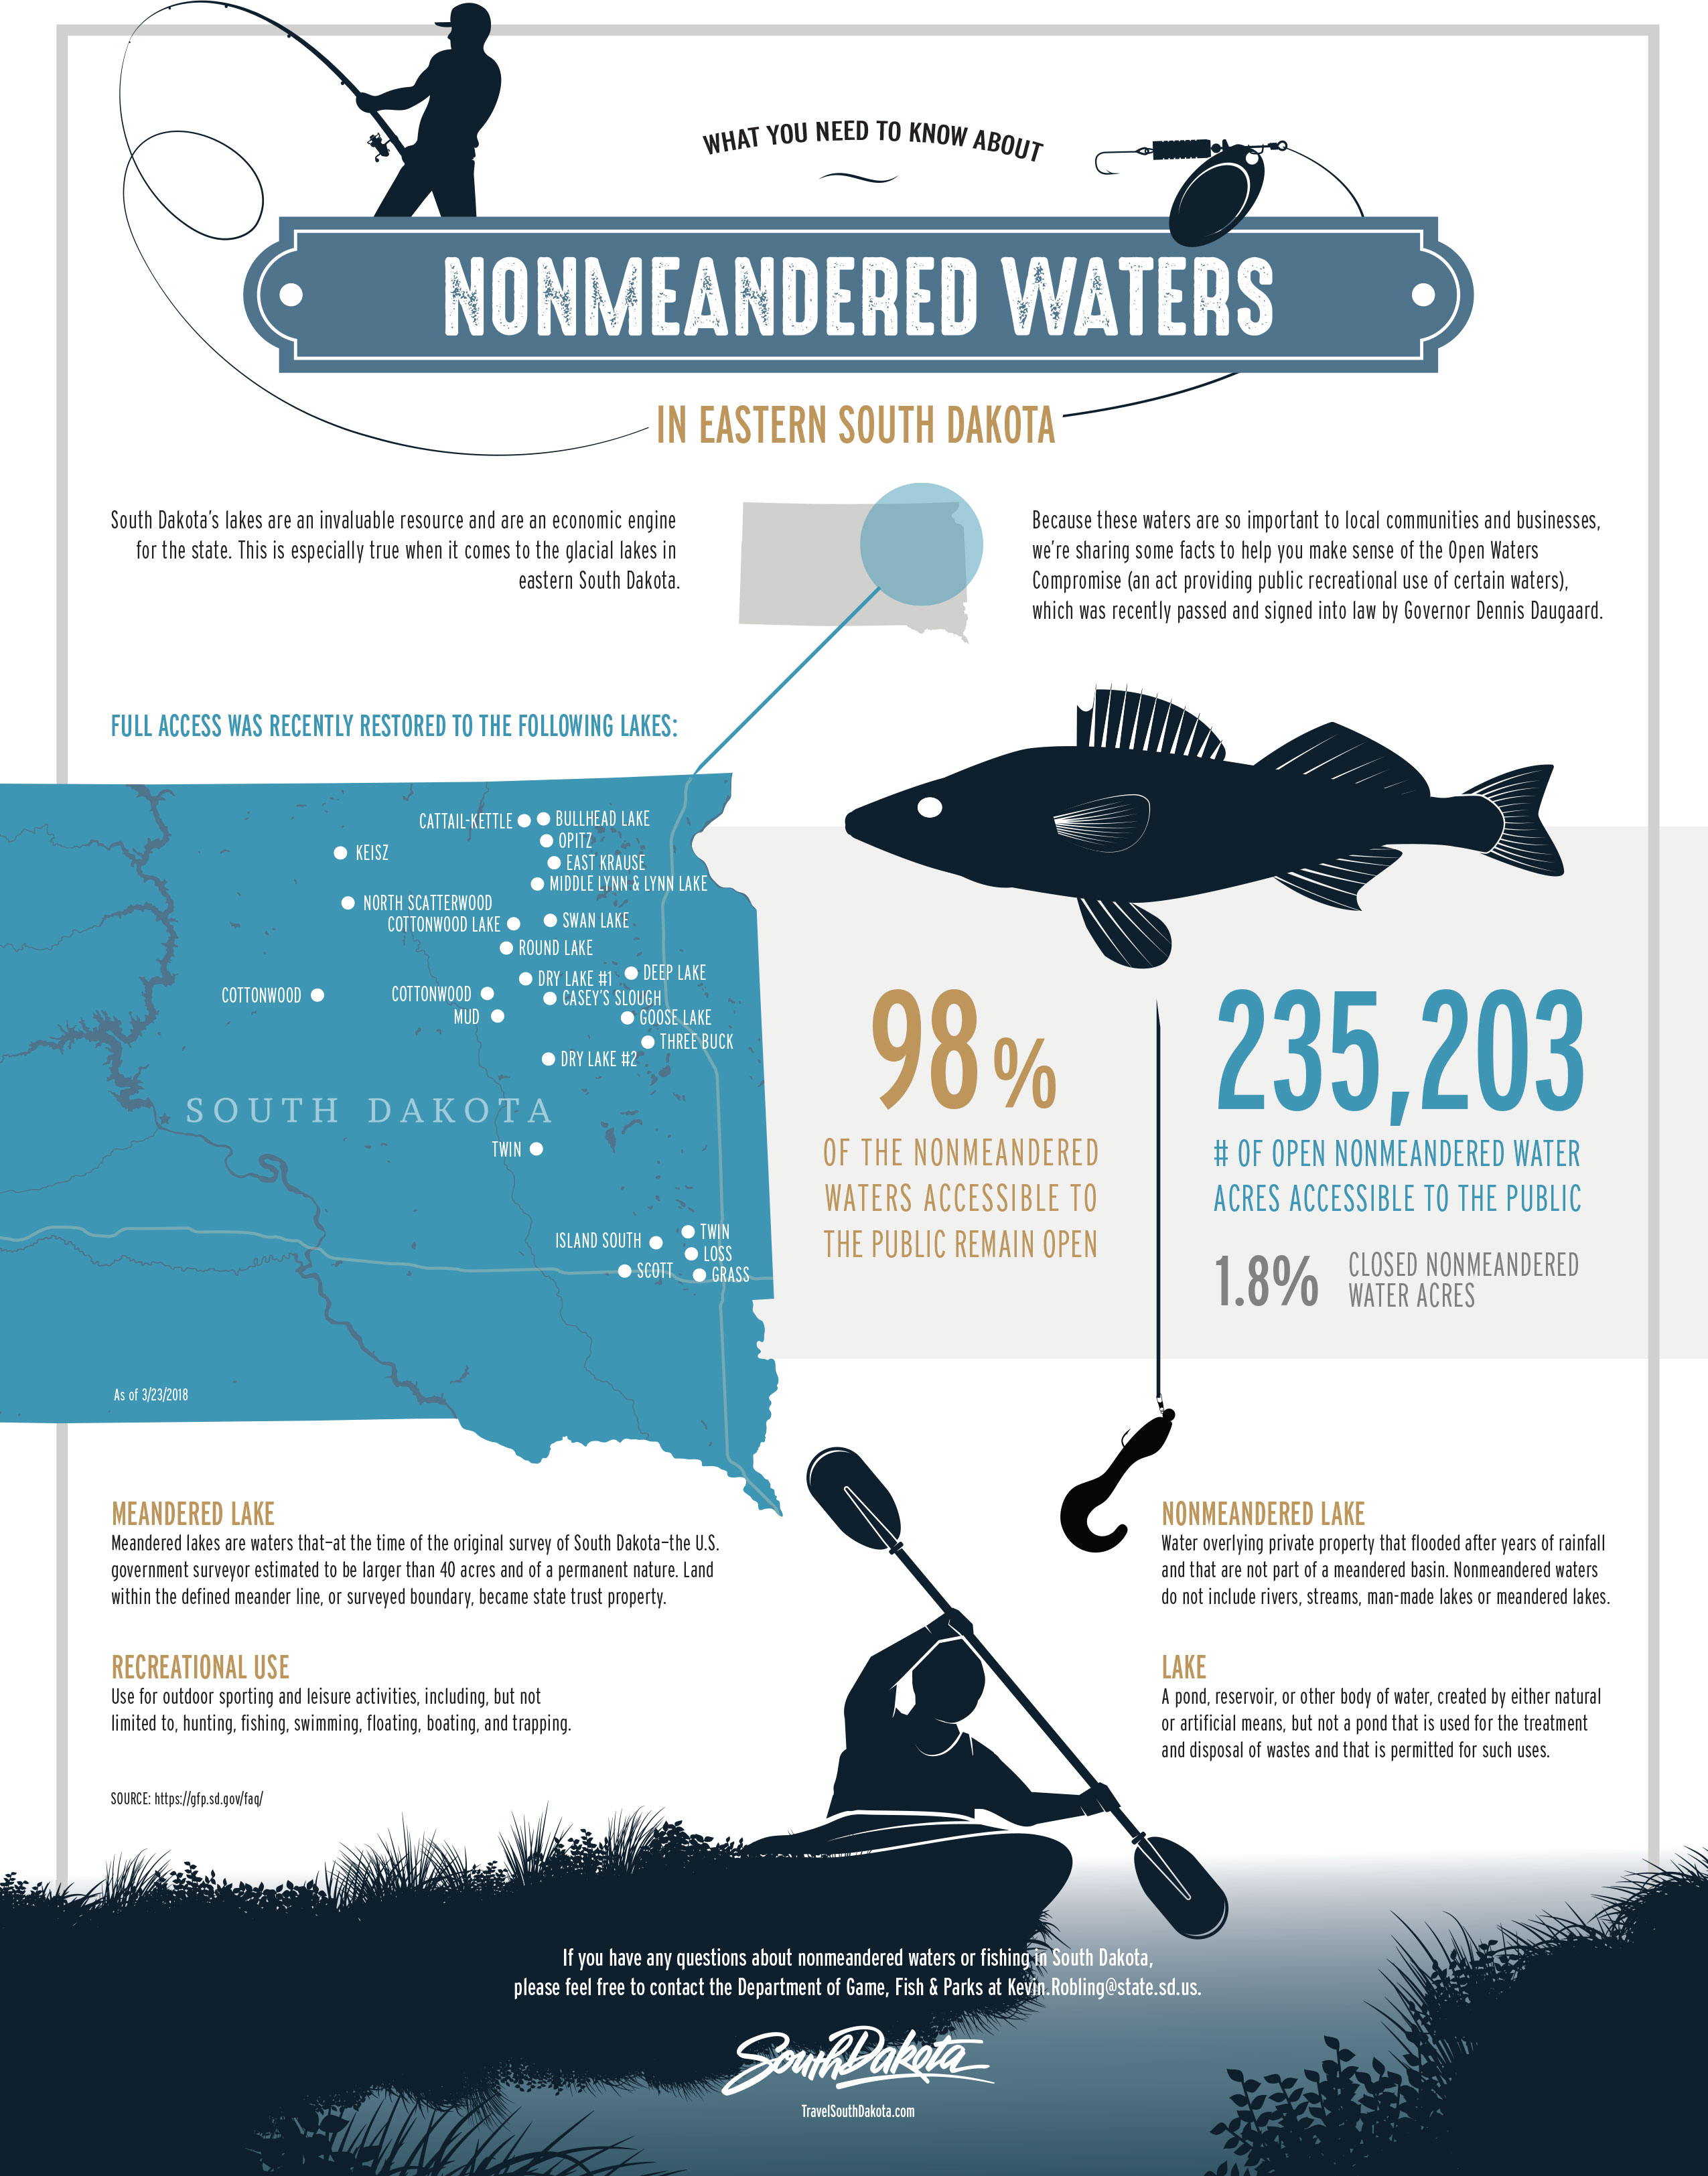 2018 South Dakota Nonmeandered Waters Infographic